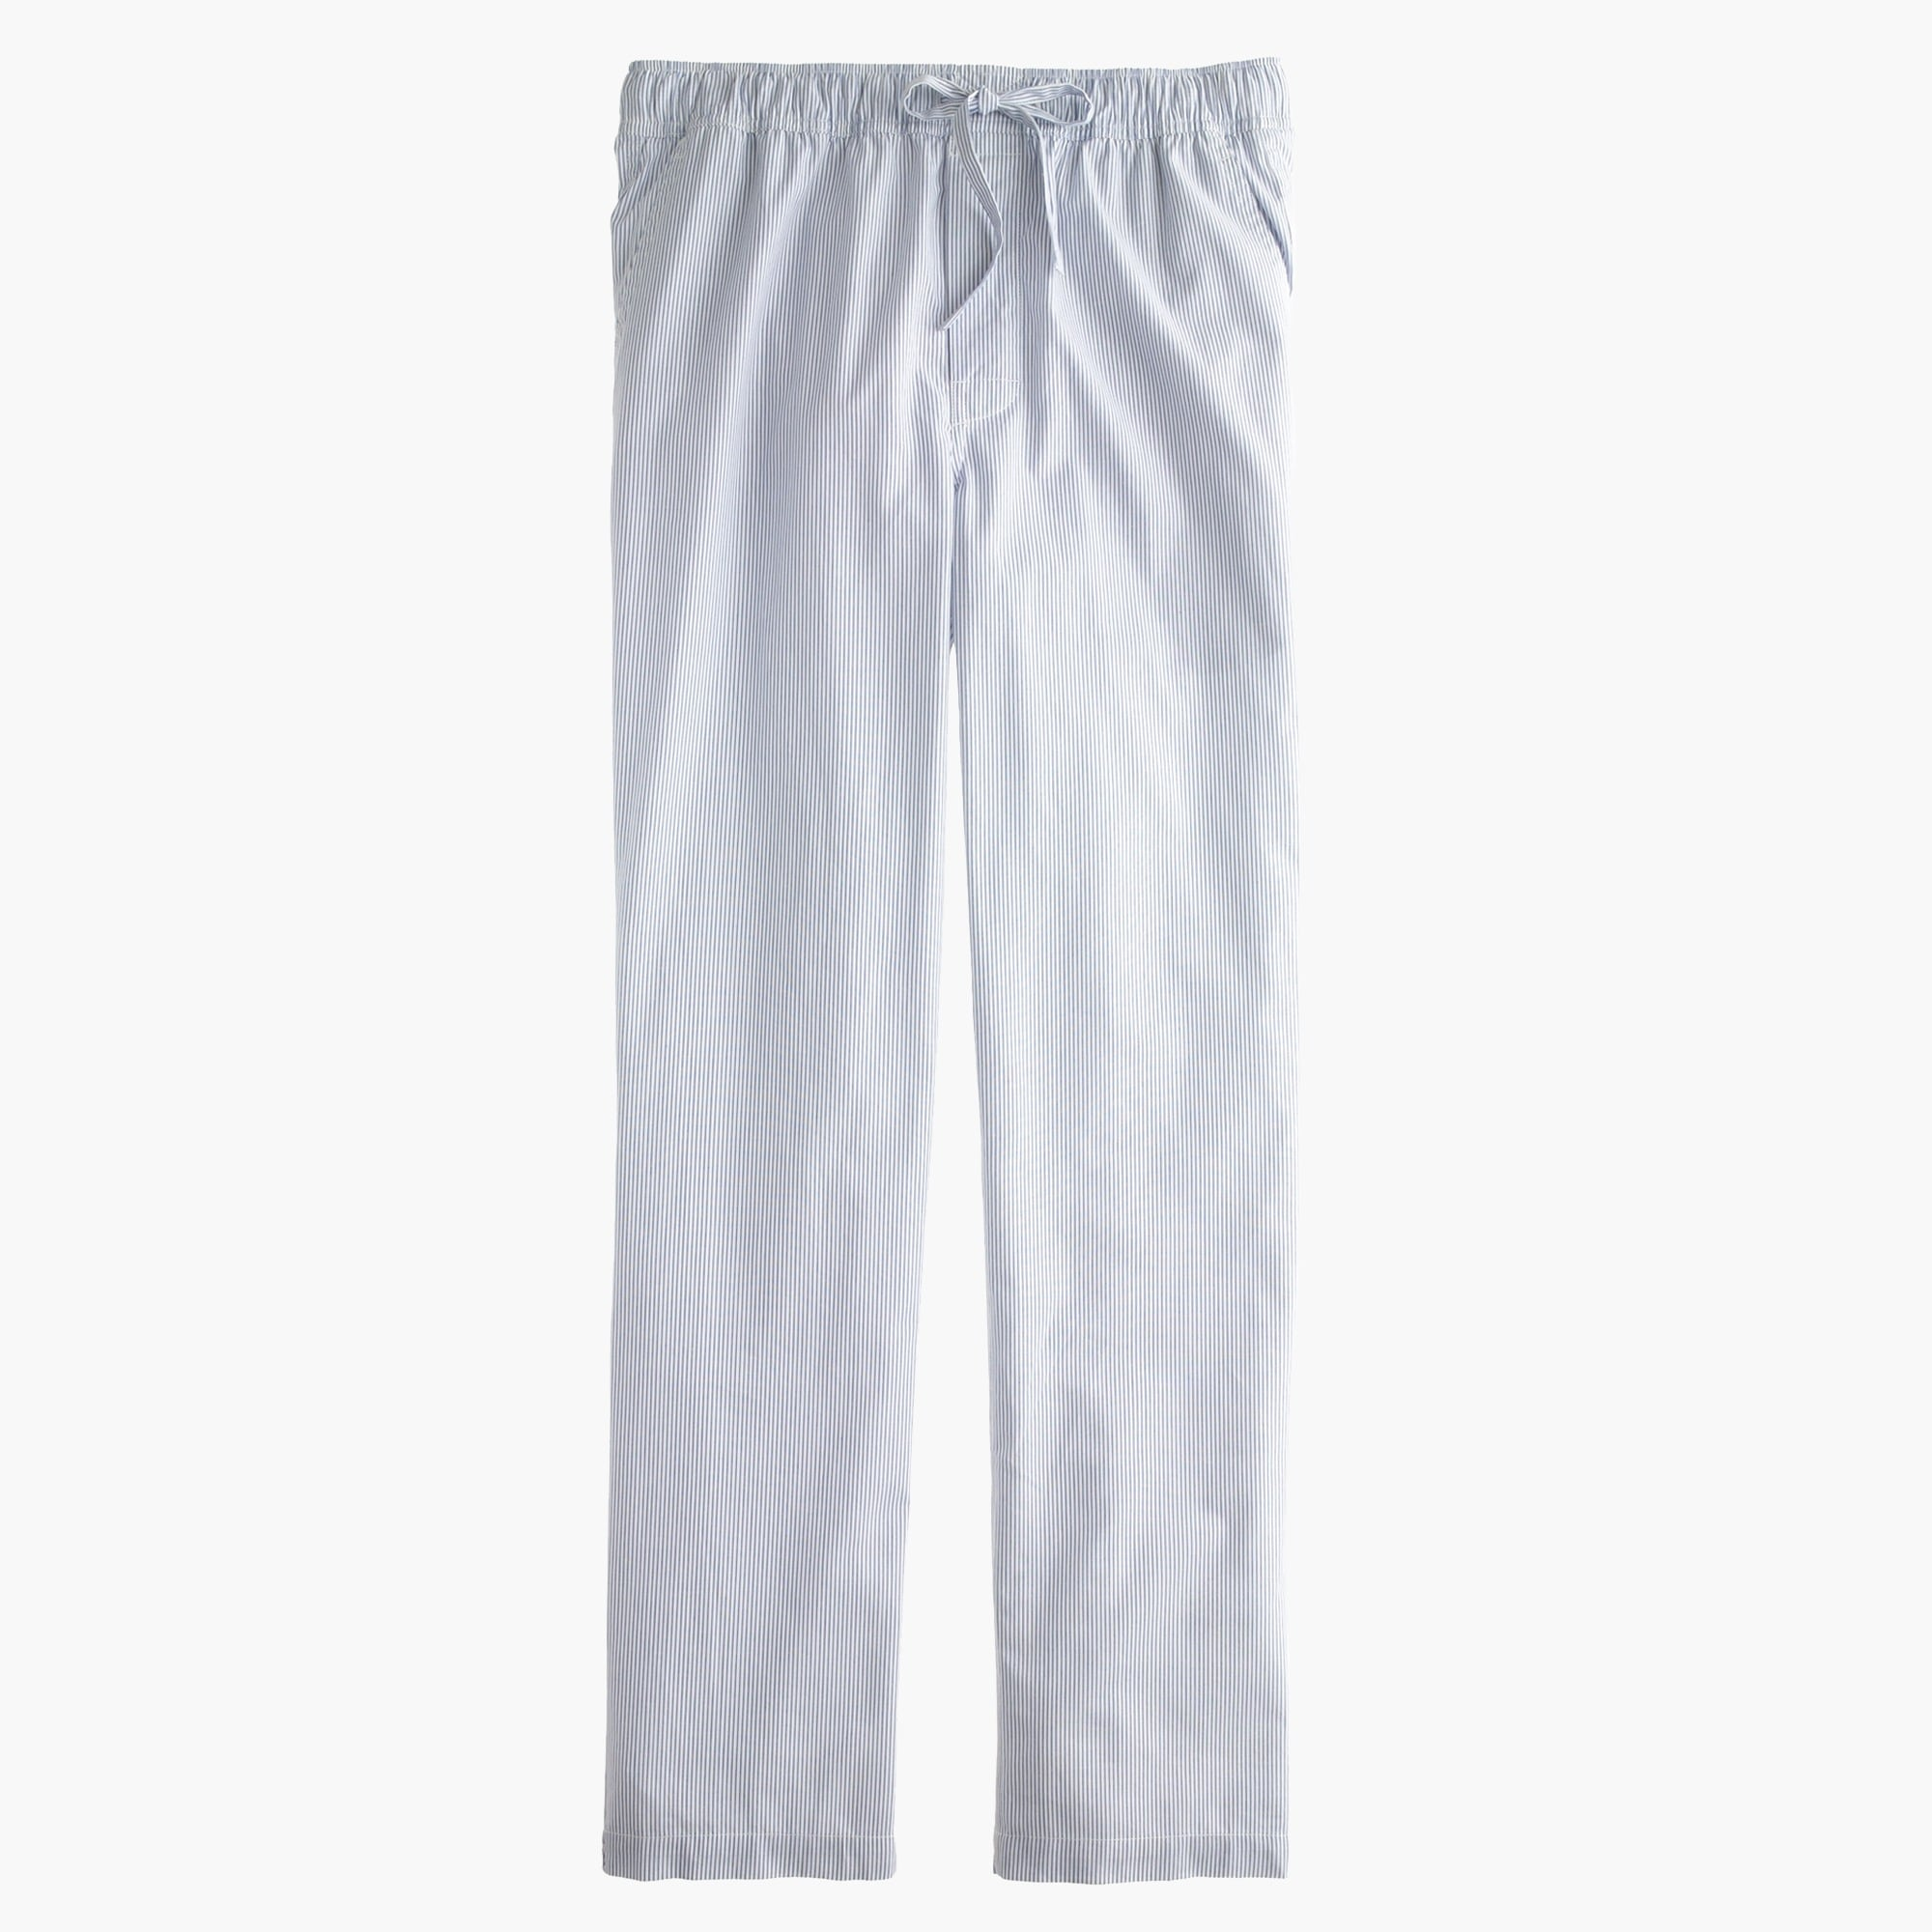 Image 1 for Cotton pajama pant in stripe